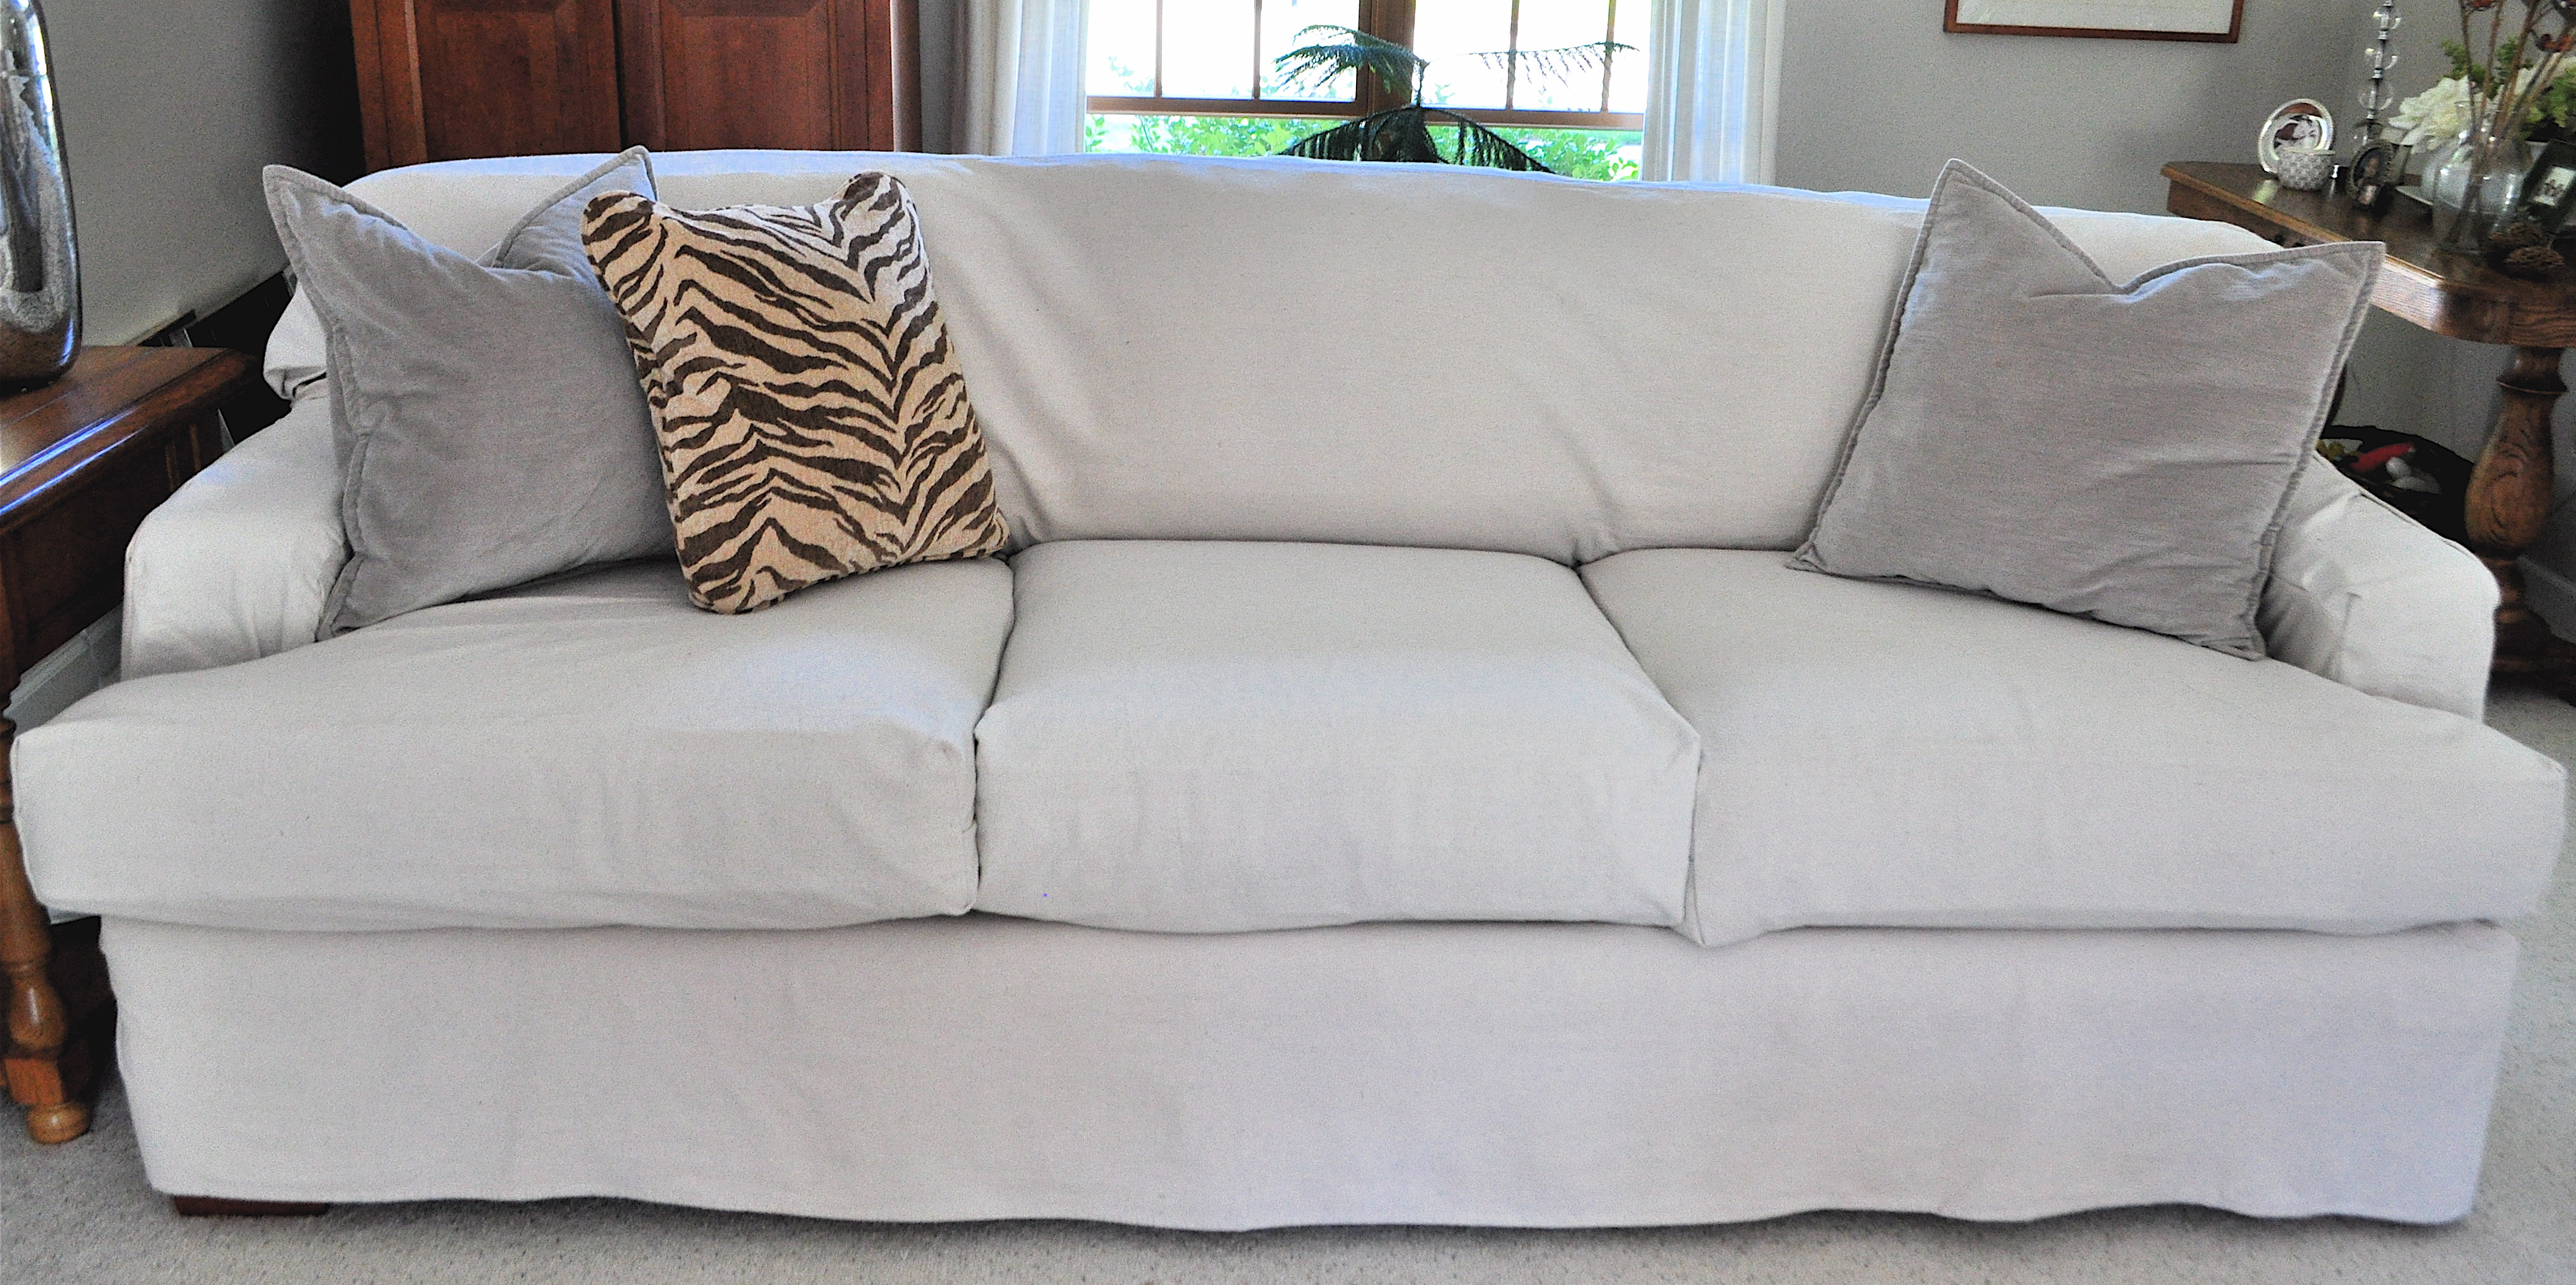 Sofa Slipcovers Made From Drop Cloths Modern Hen home